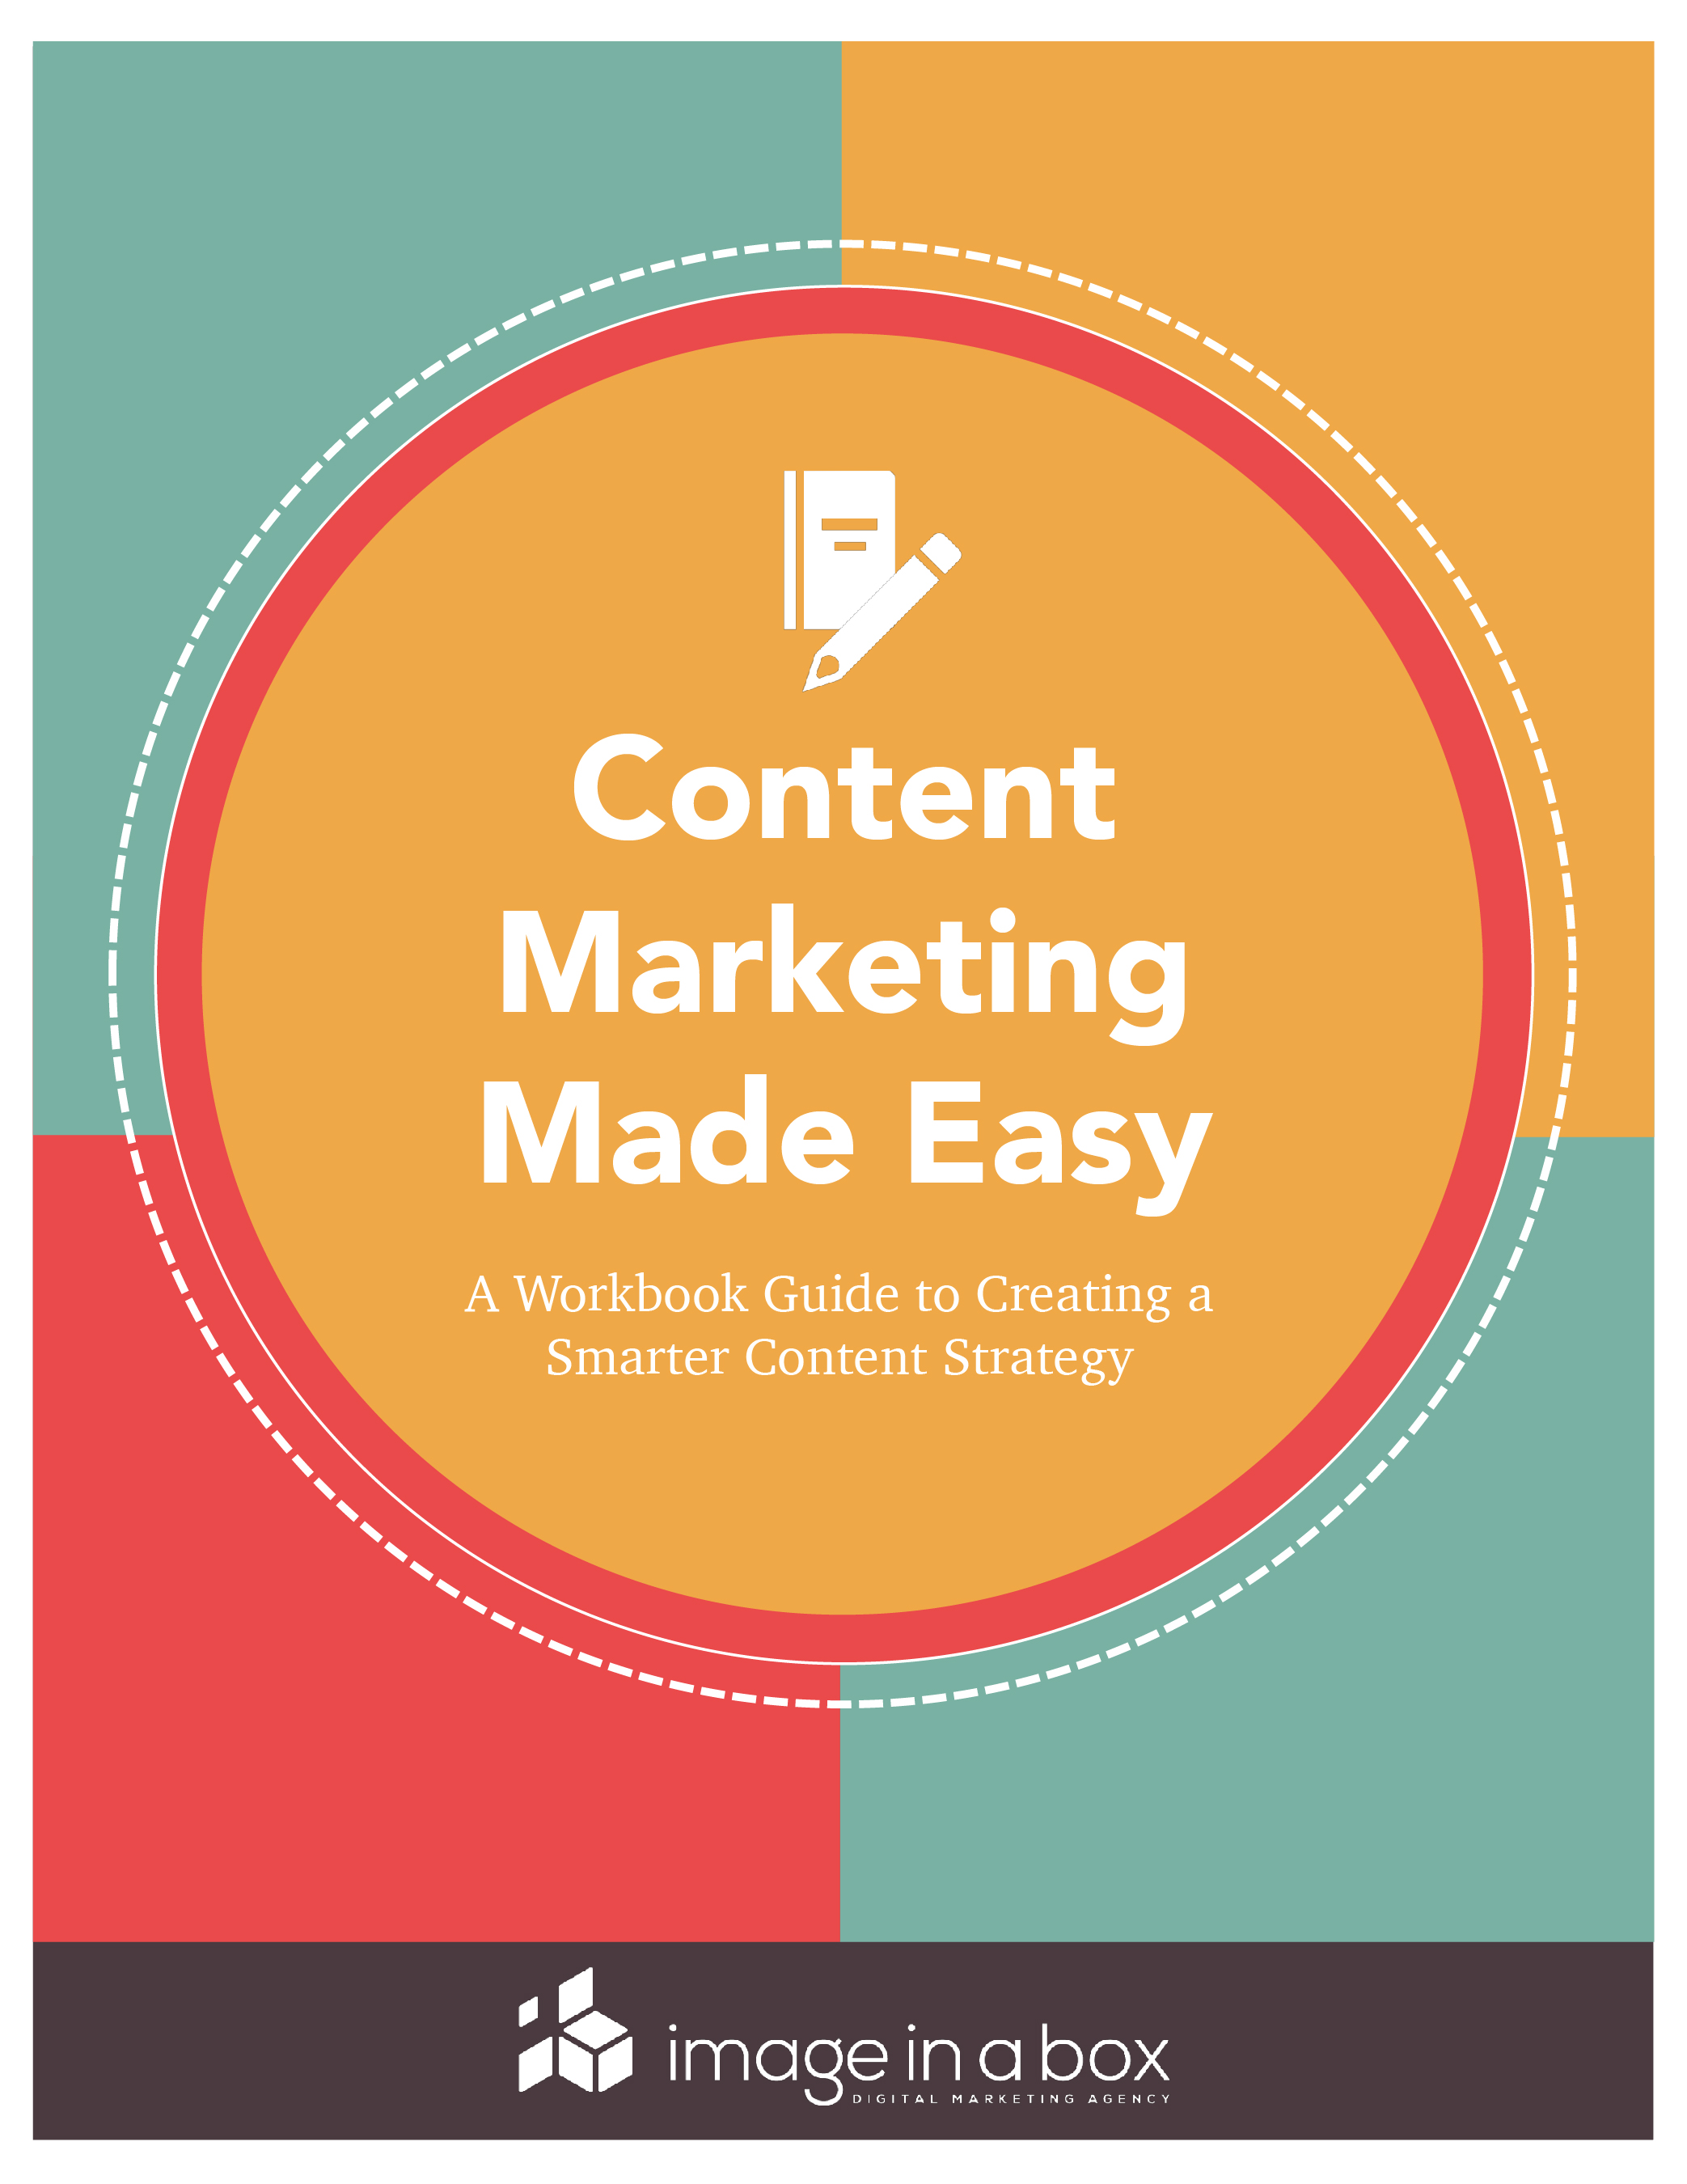 Content-Marketing-Workbook-Cover.jpg